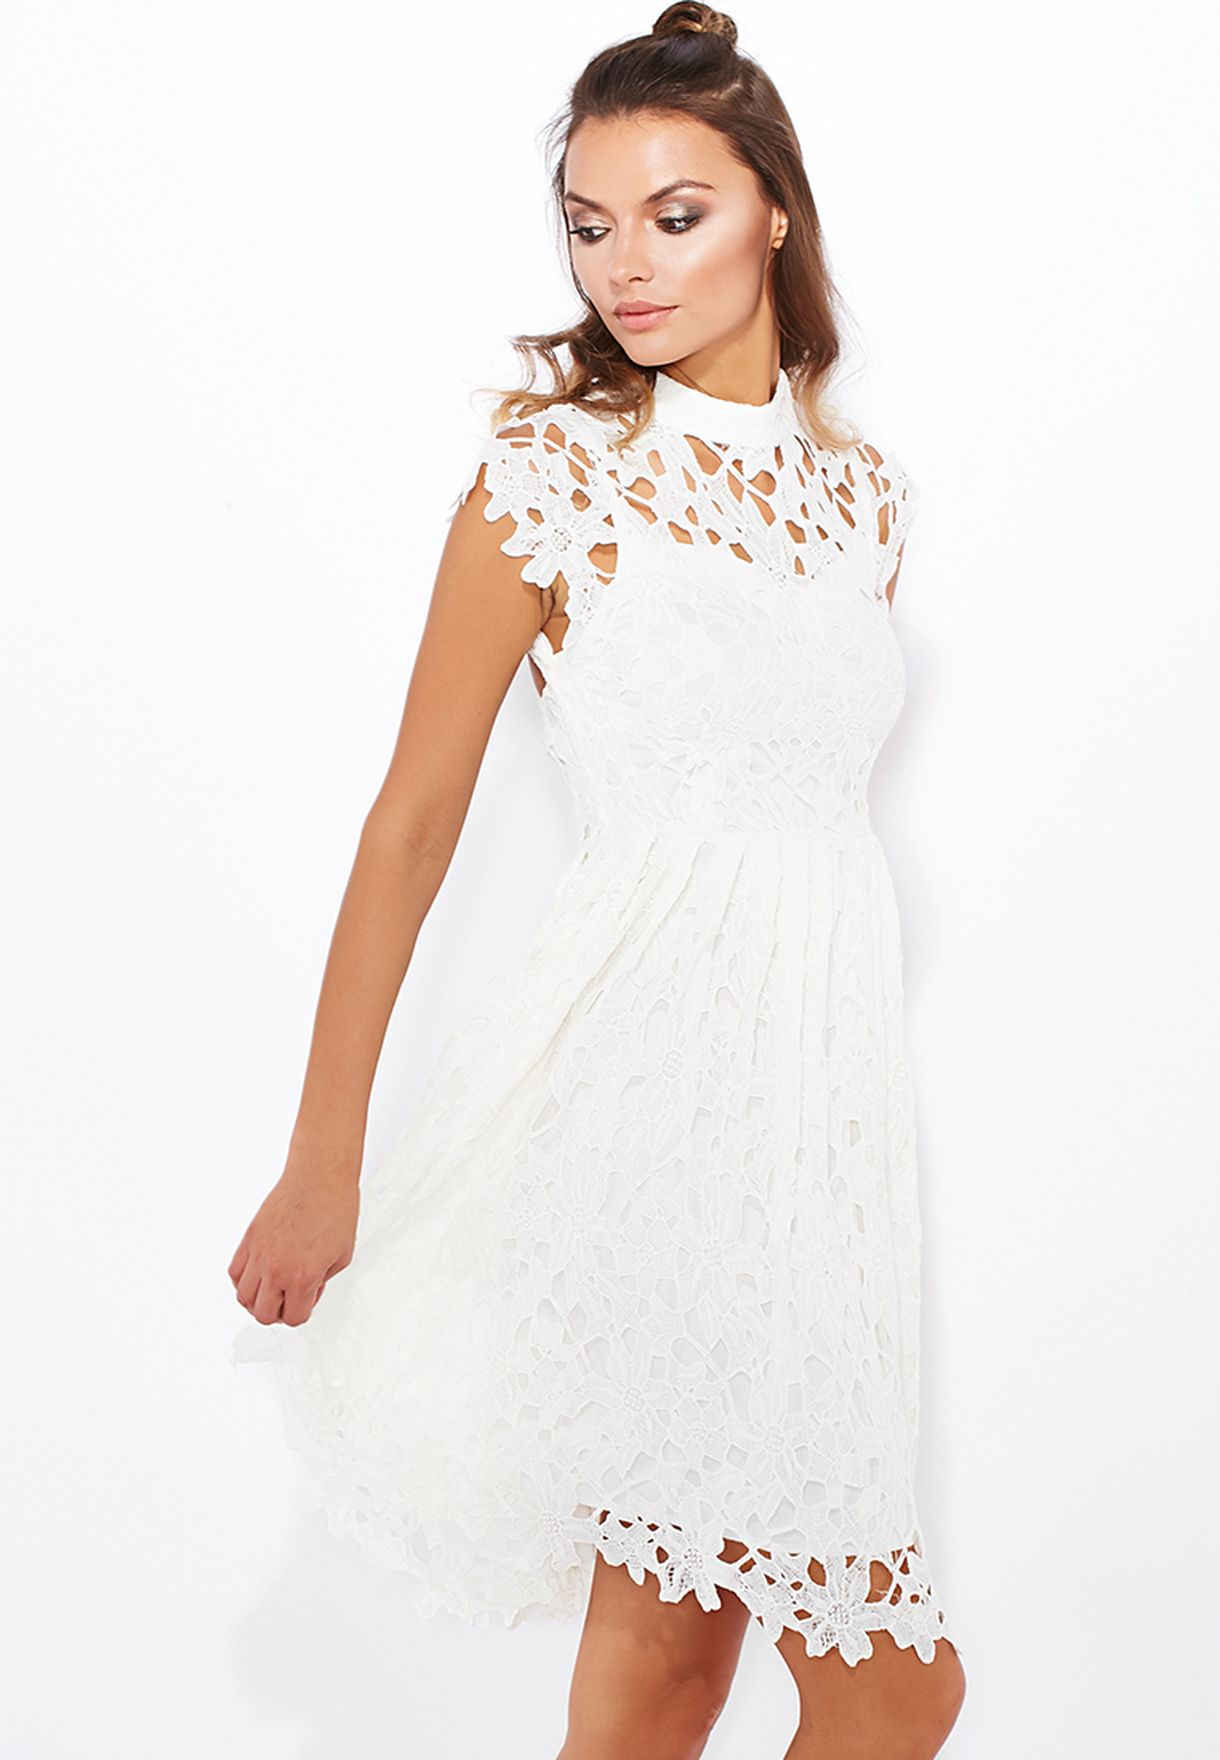 98c0840fdeb9 Shop Boohoo white Crochet High Neck Dress AZZ16125 for Women in ...